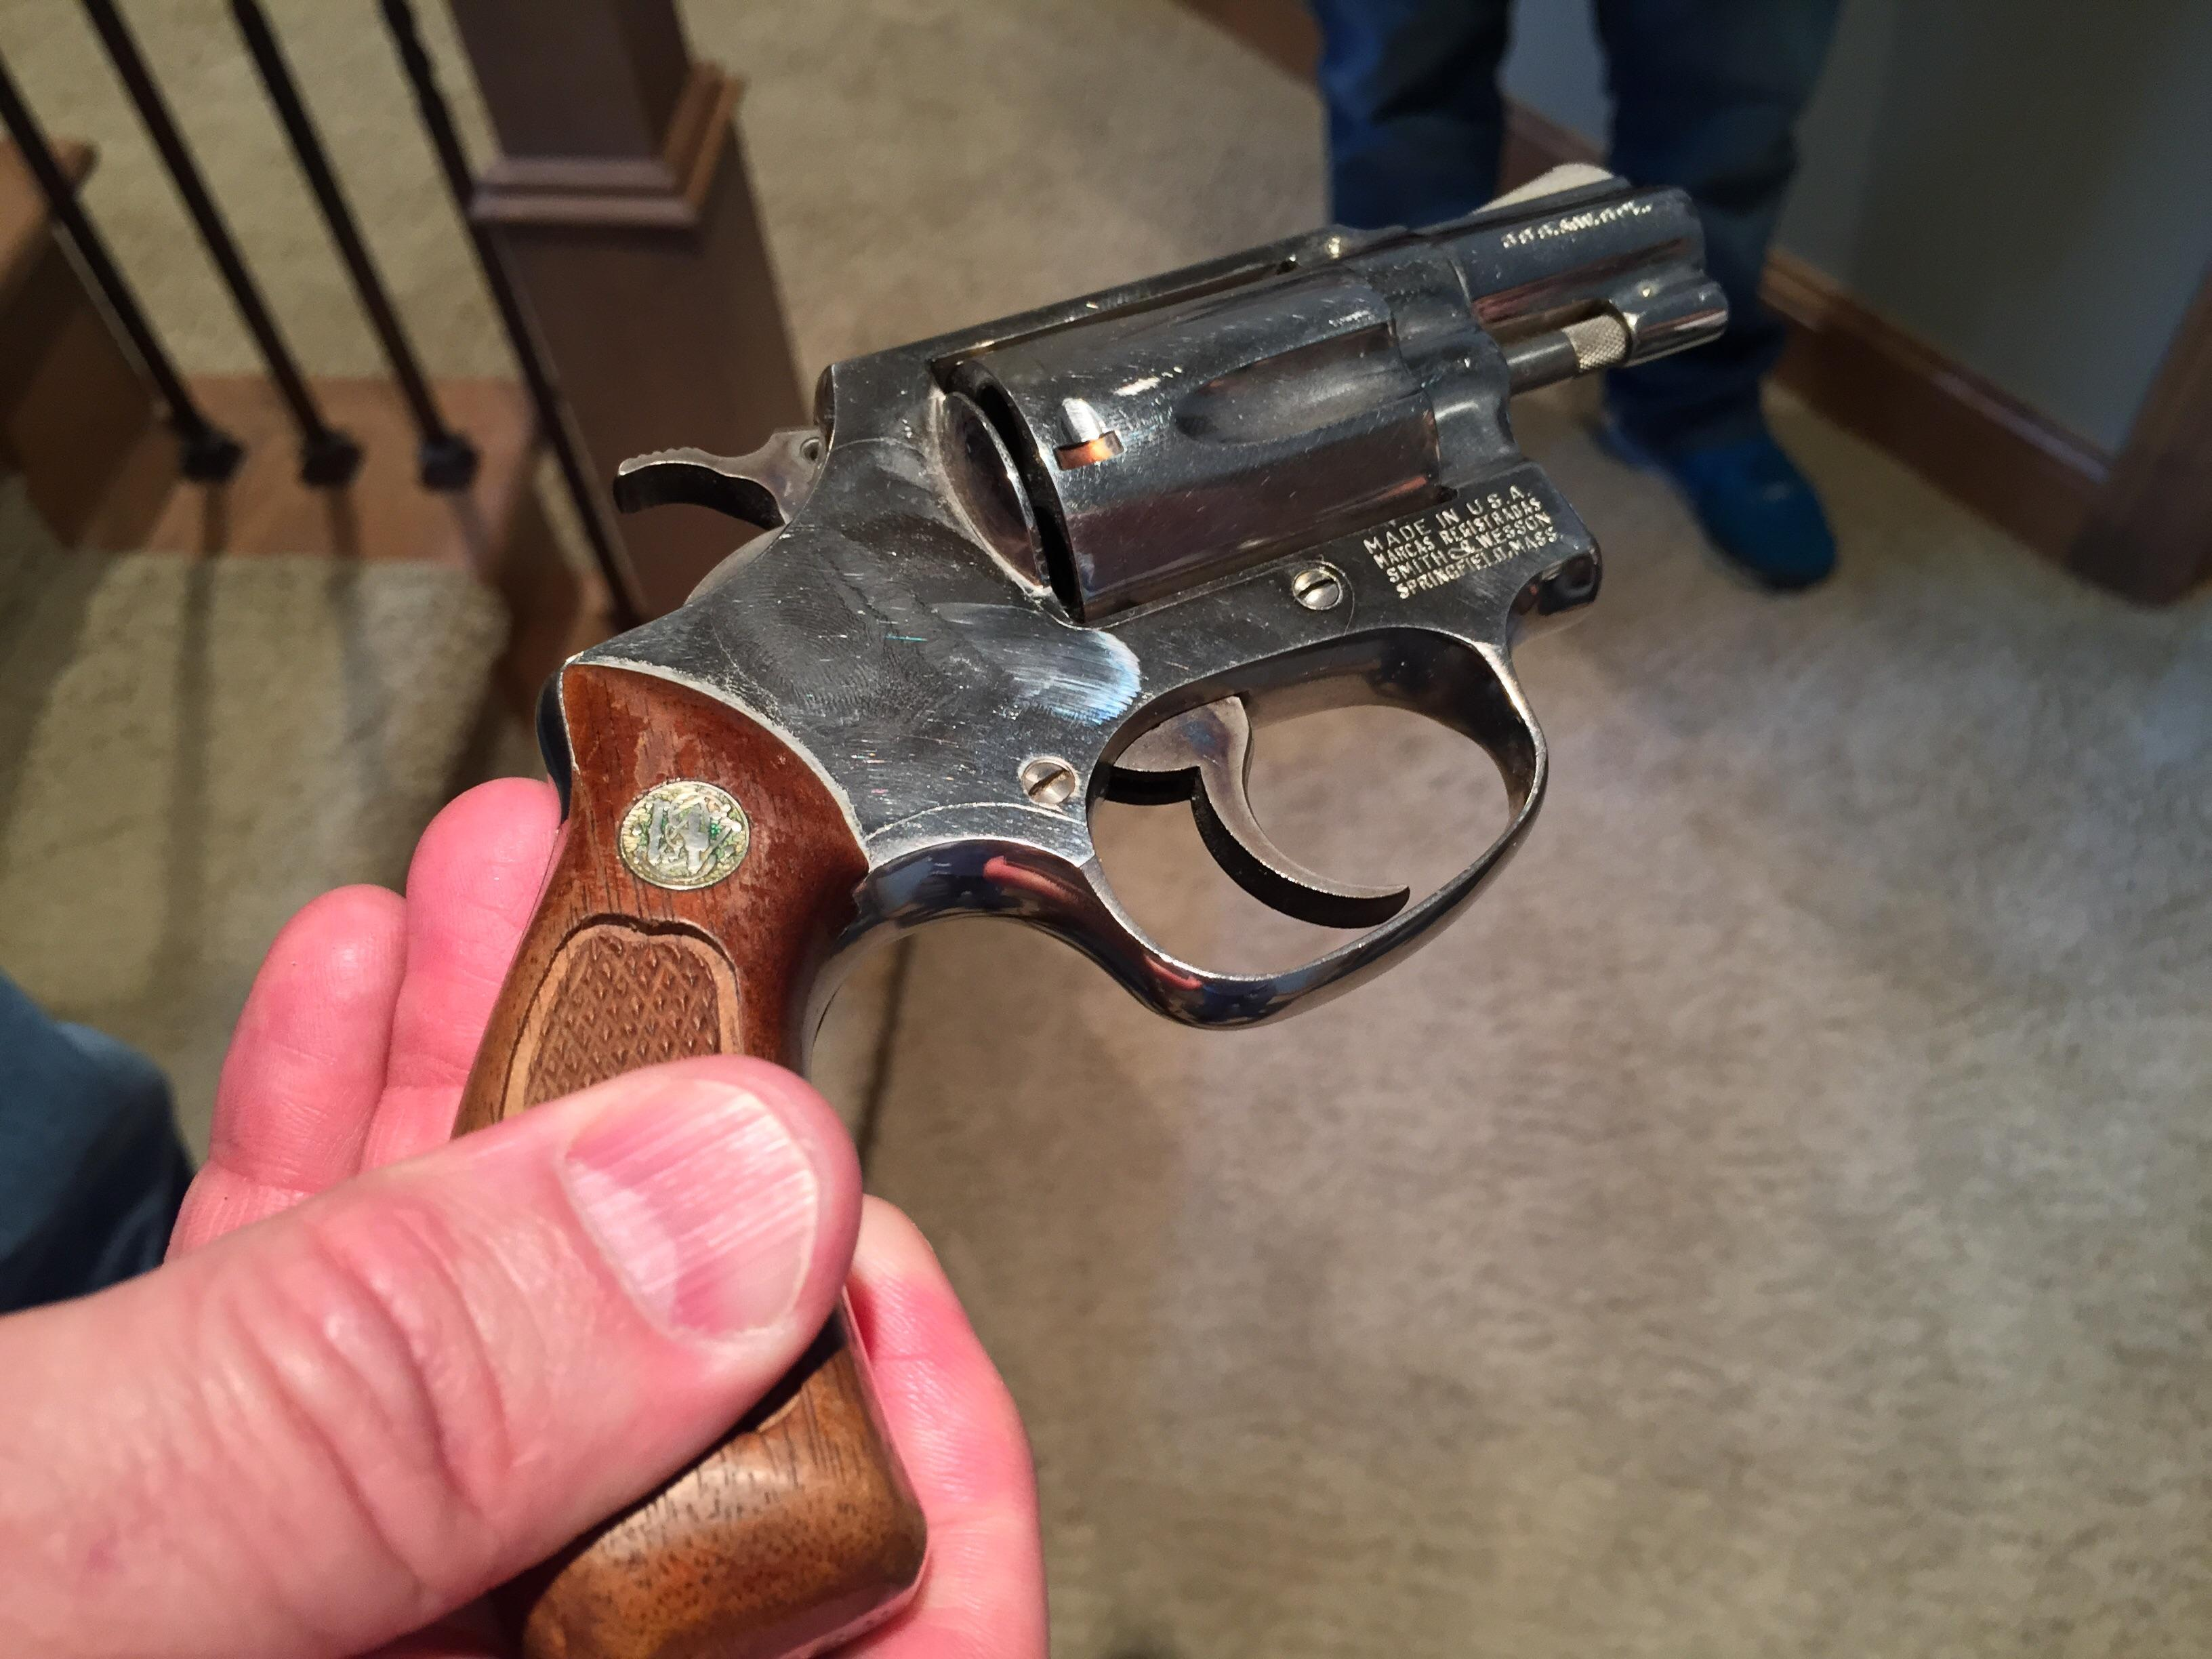 Greg Erceg had this revolver in his nightstand on Wednesday morning.